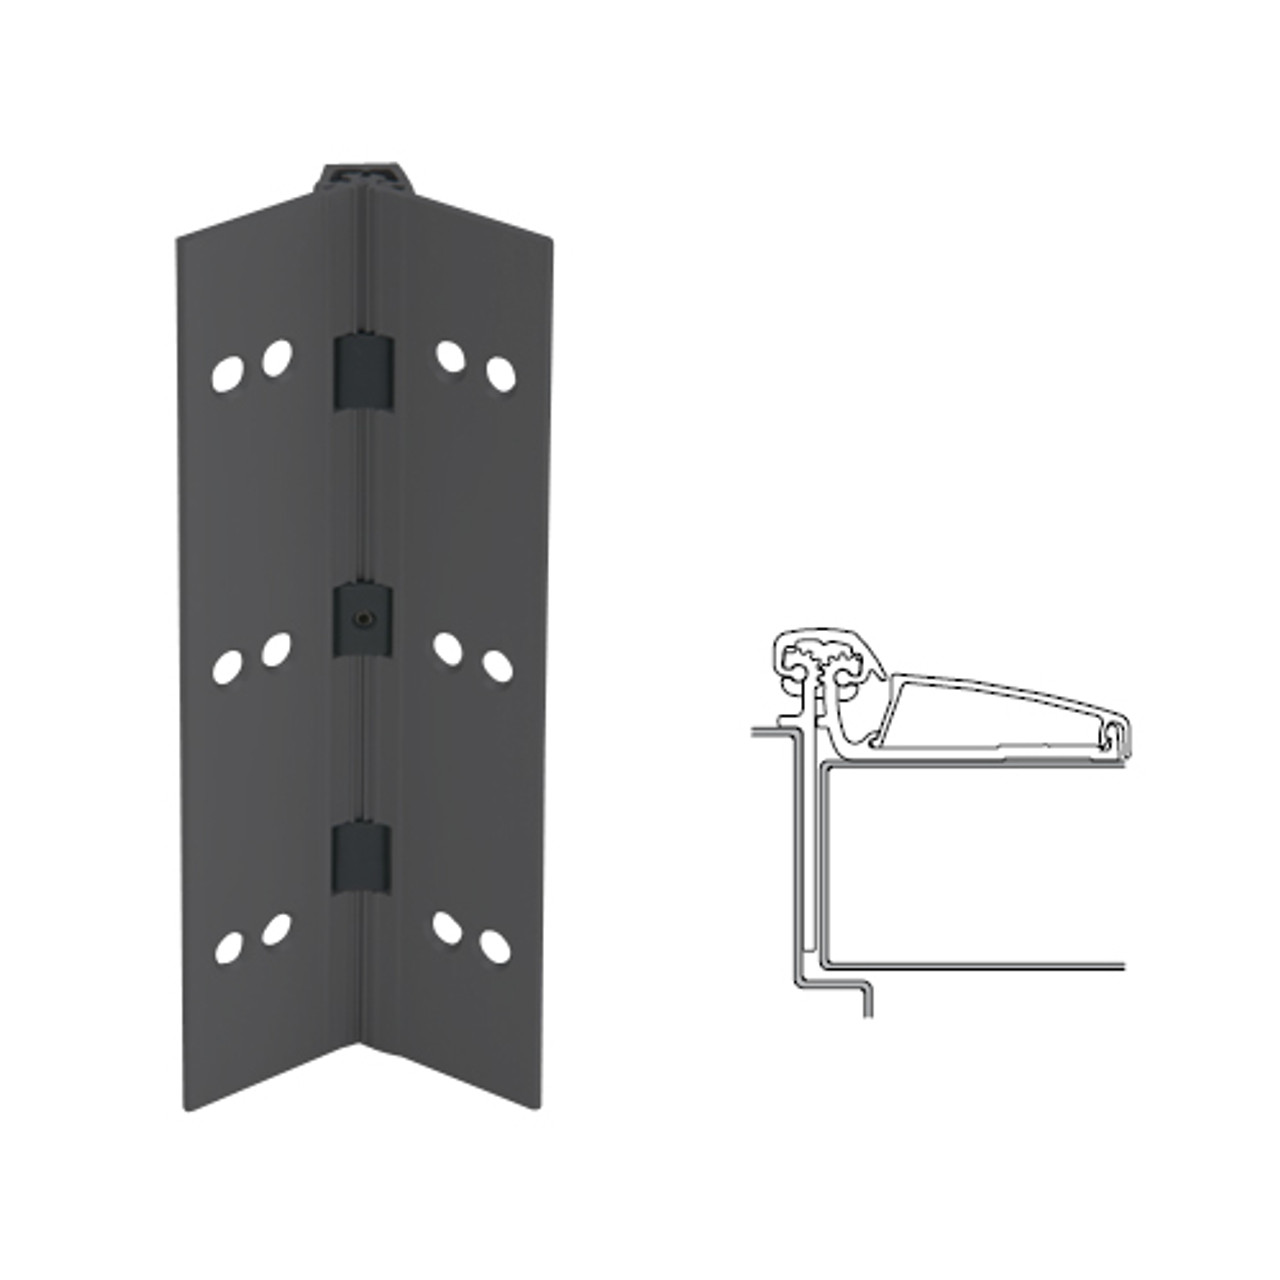 046XY-315AN-85-SECWDHM IVES Adjustable Half Surface Continuous Geared Hinges with Security Screws - Hex Pin Drive in Anodized Black